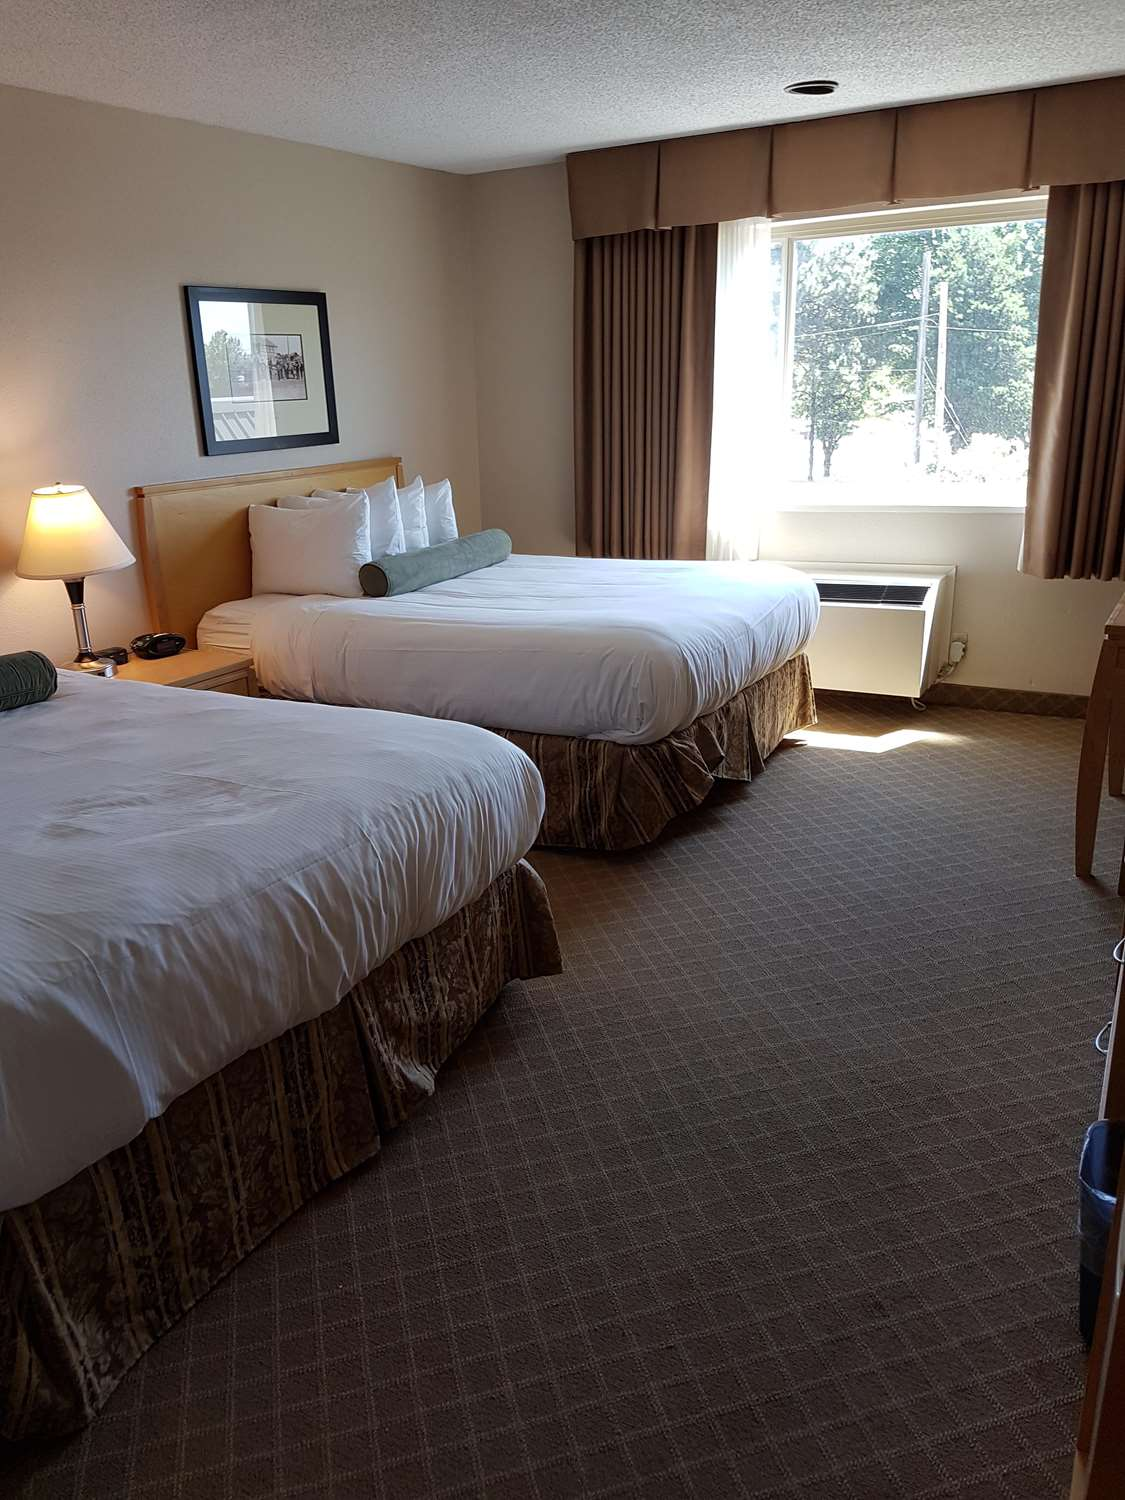 Room - SureStay Plus Hotel by Best Western Coquitlam